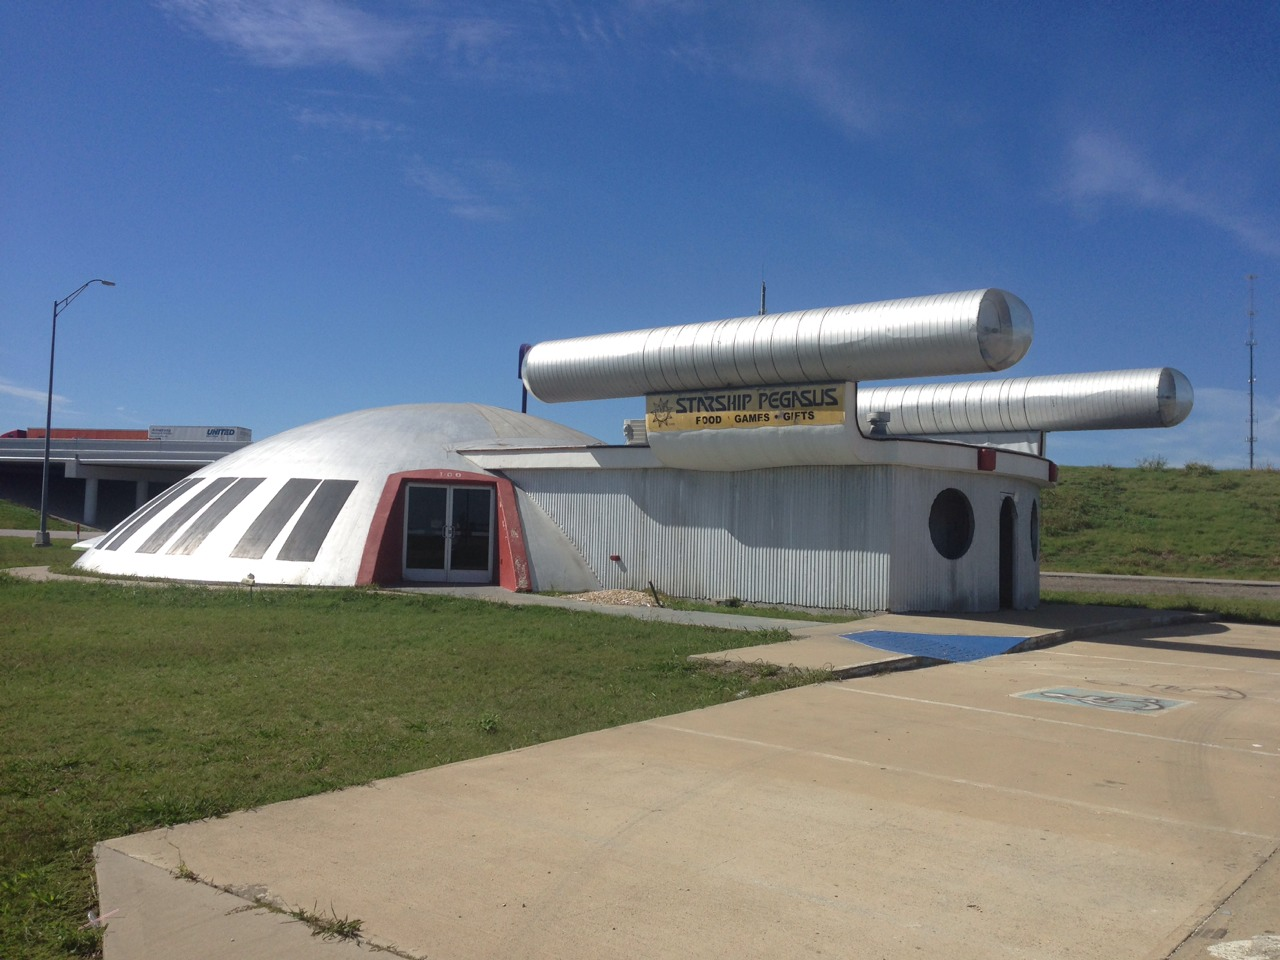 Who knew that Italy, Texas would have so much to offer?  This roadside attraction is known as the Starship Pegasus.  It served (at one time) as a game room (undoubtably a pedophile lair) of some kind.  It's in the shape of a Star Trek Enterprise…